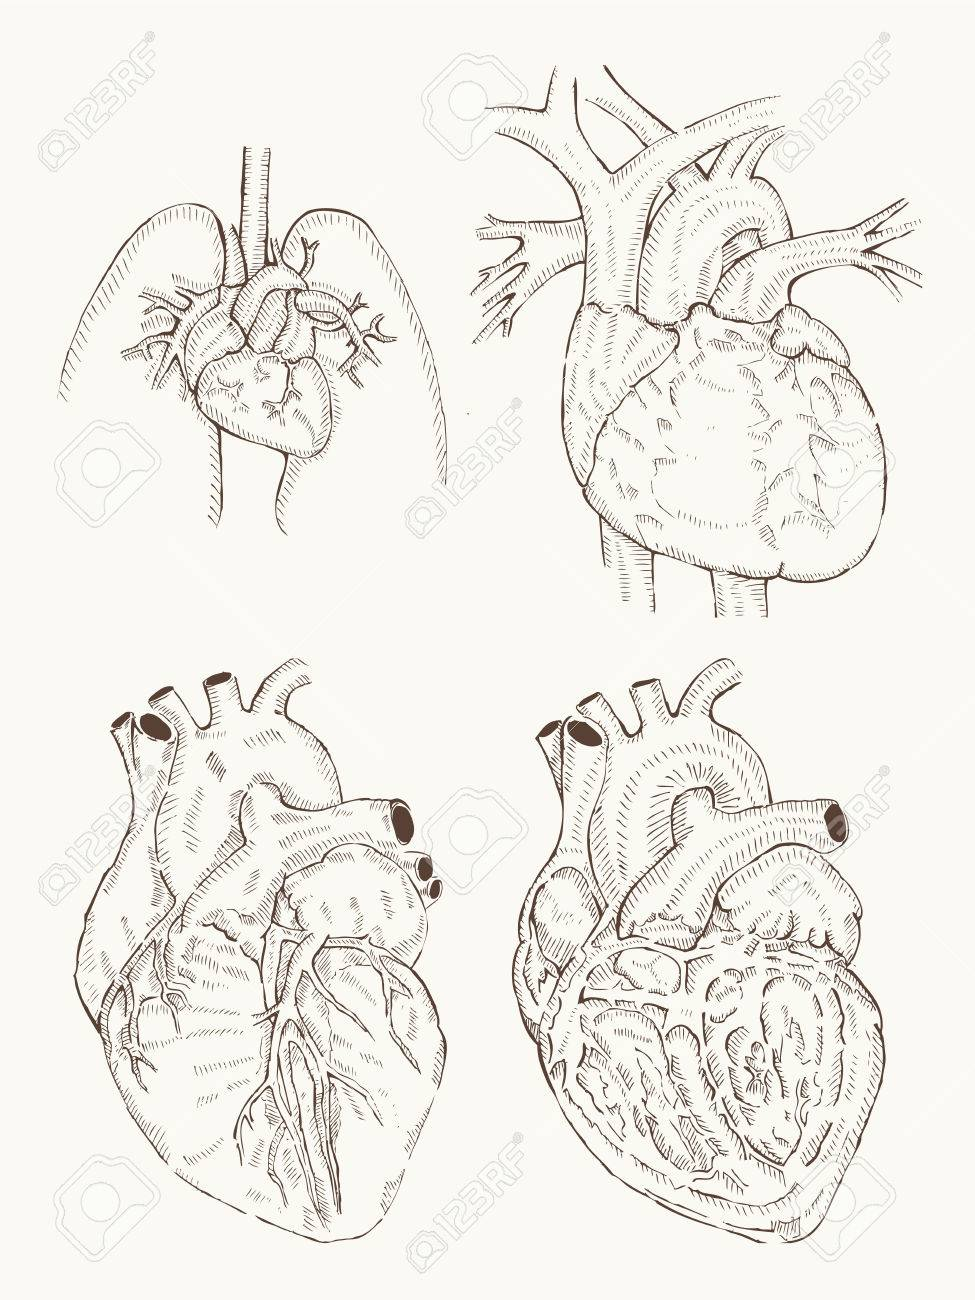 Heart Anatomy Hand Draw Royalty Free Cliparts Vectors And Stock